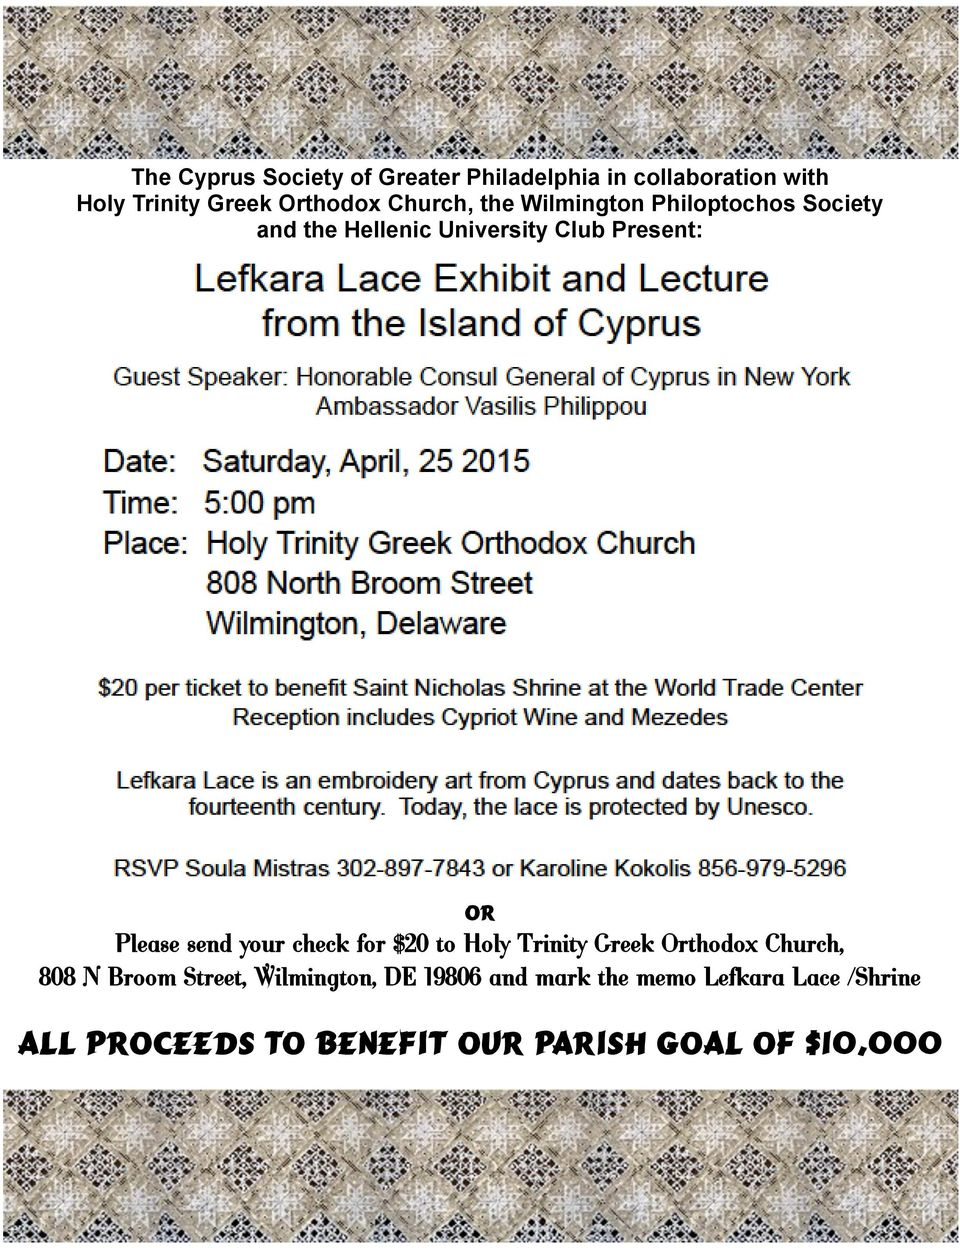 send your check for $20 to Holy Trinity Greek Orthodox Church, 808 N Broom Street, Wilmington,